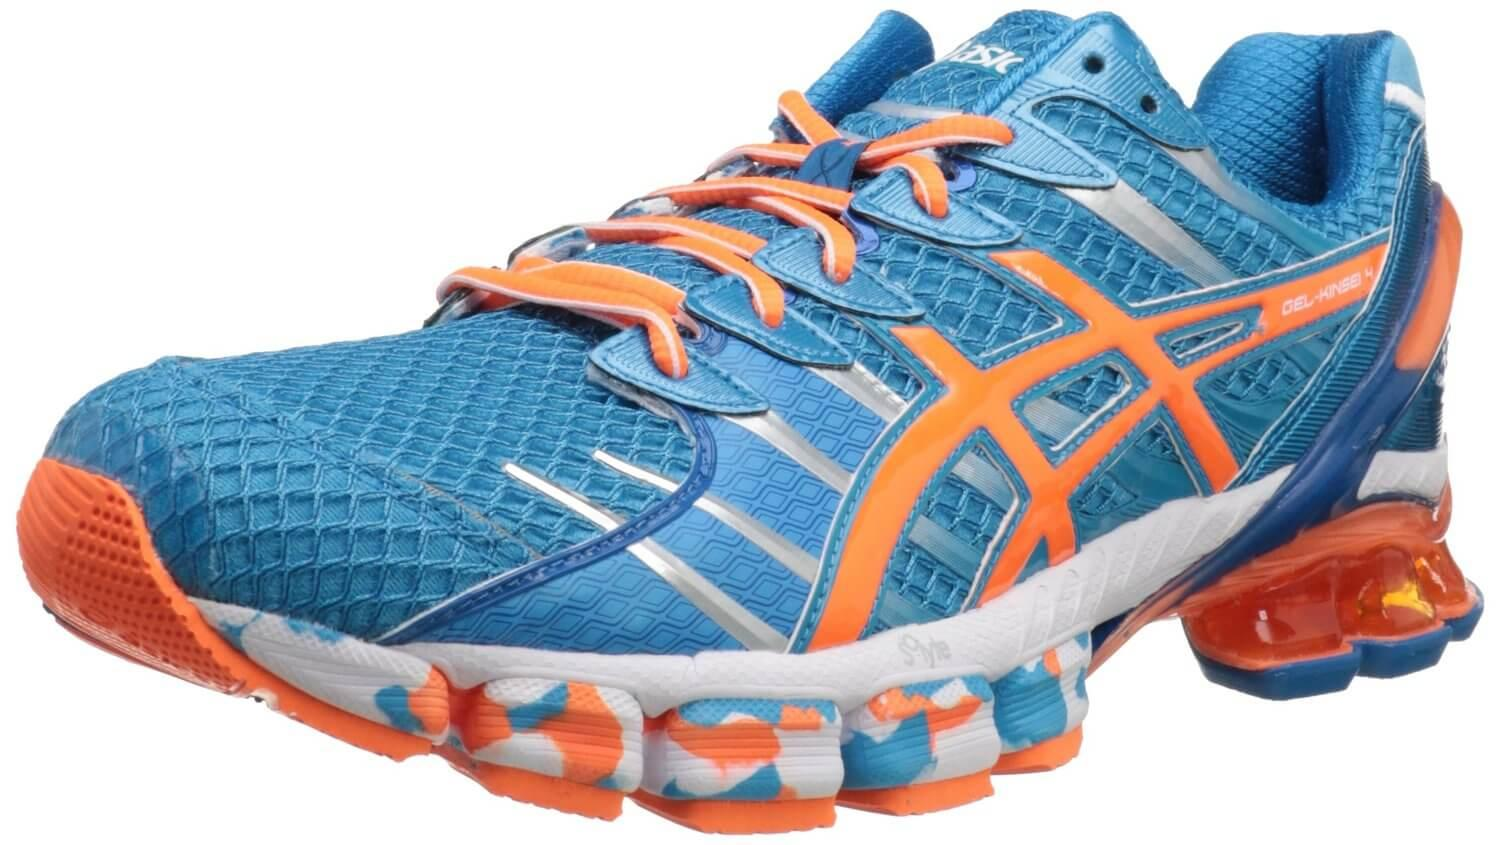 the ASICS Gel Kinsei 4 is a stability shoe that offers tenacious traction